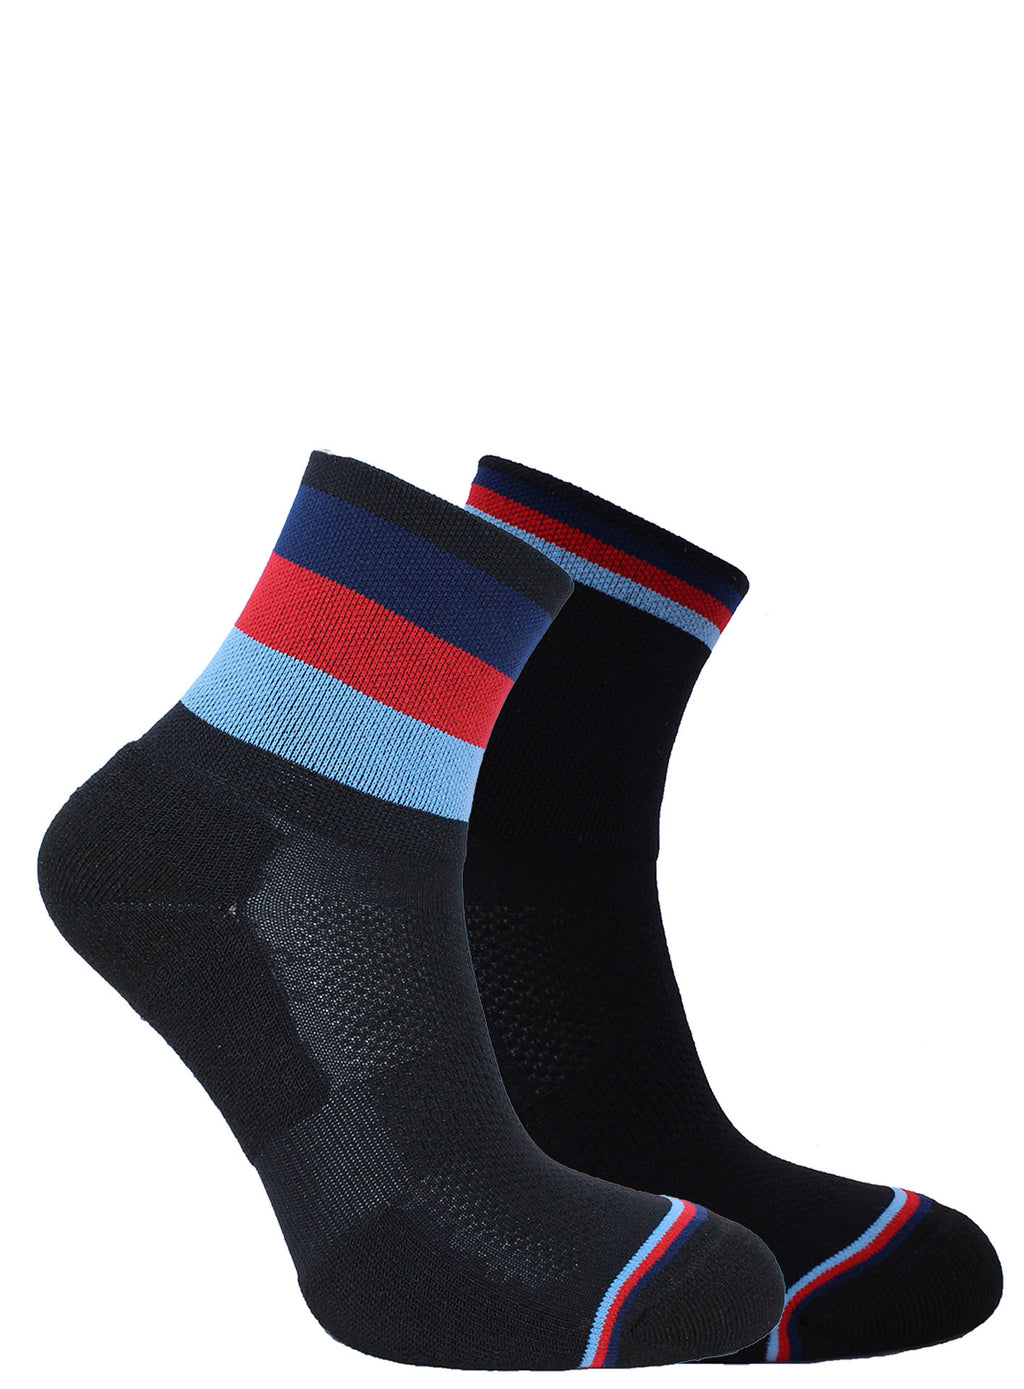 Help for Heroes Cycling Socks